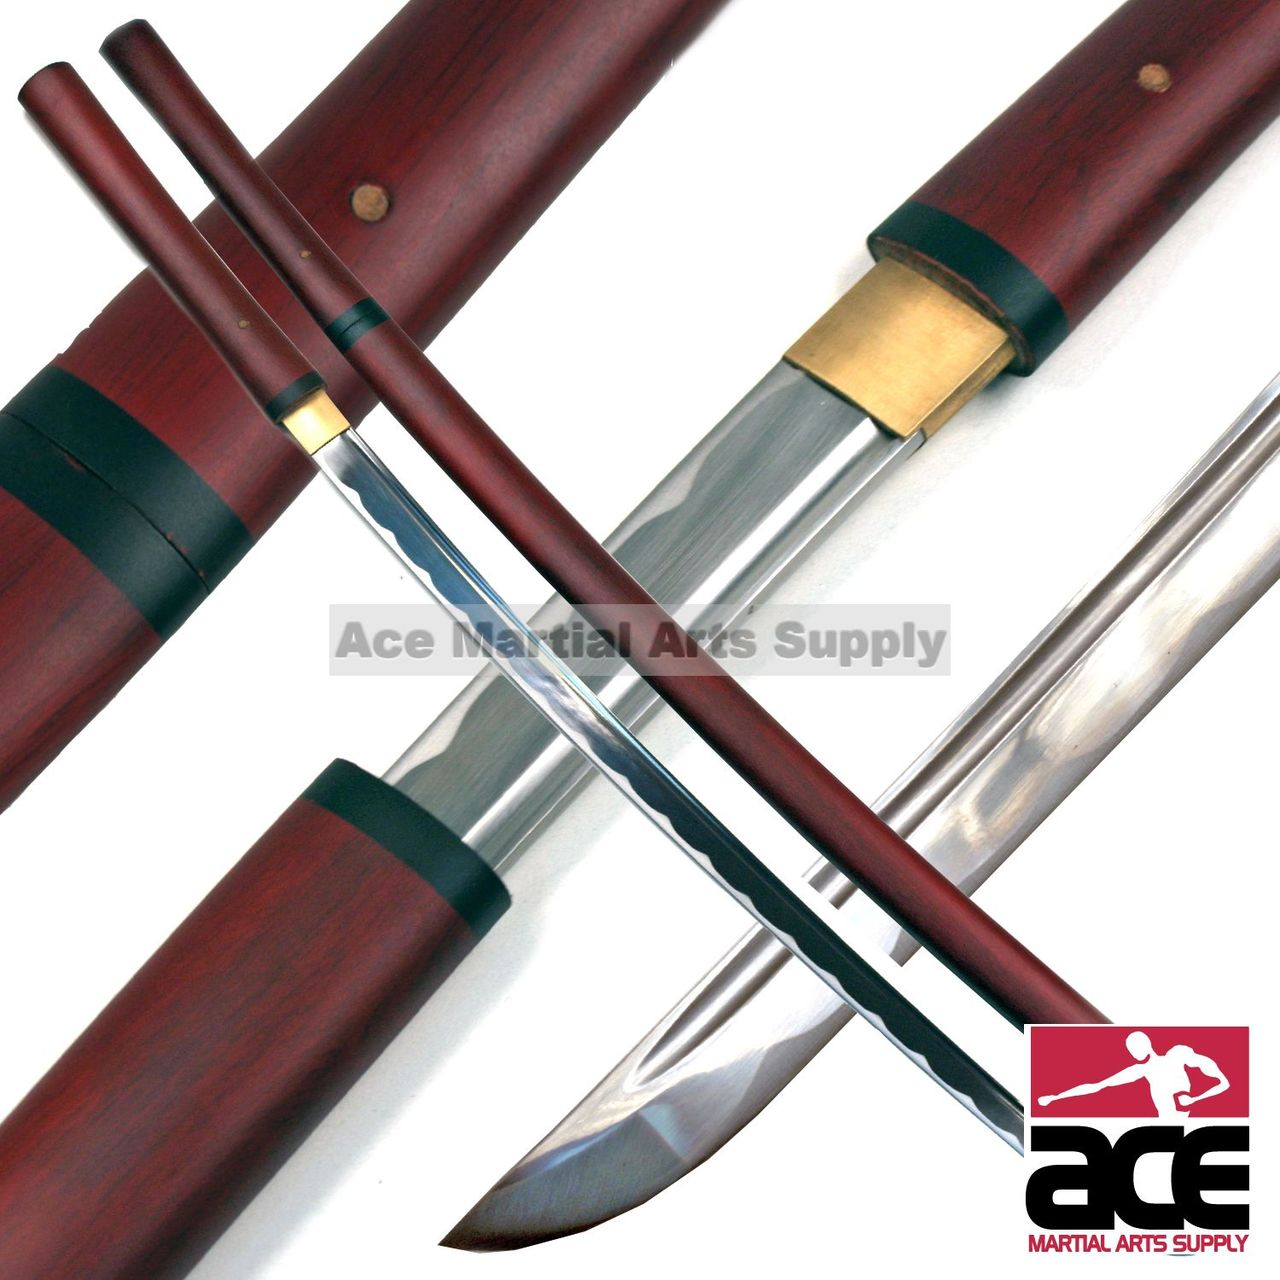 musashi handmade japanese shirasaya samurai katana sword in los both its handle and scabbard are wood construction with a dark stained finish appearing as one solid piece when sheathed the blade is secured to the